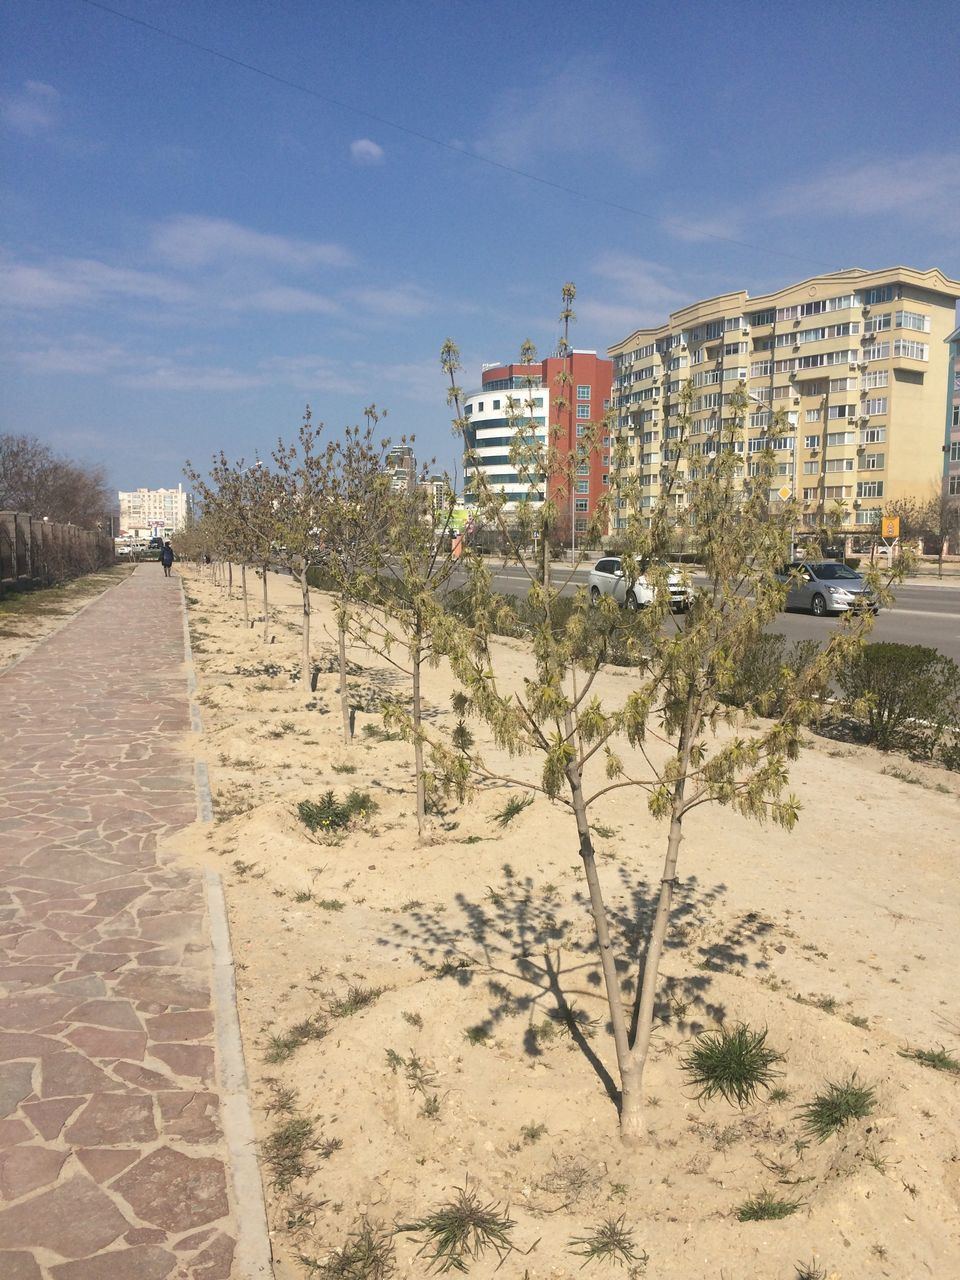 architecture, built structure, building exterior, sky, outdoors, day, sand, no people, tree, nature